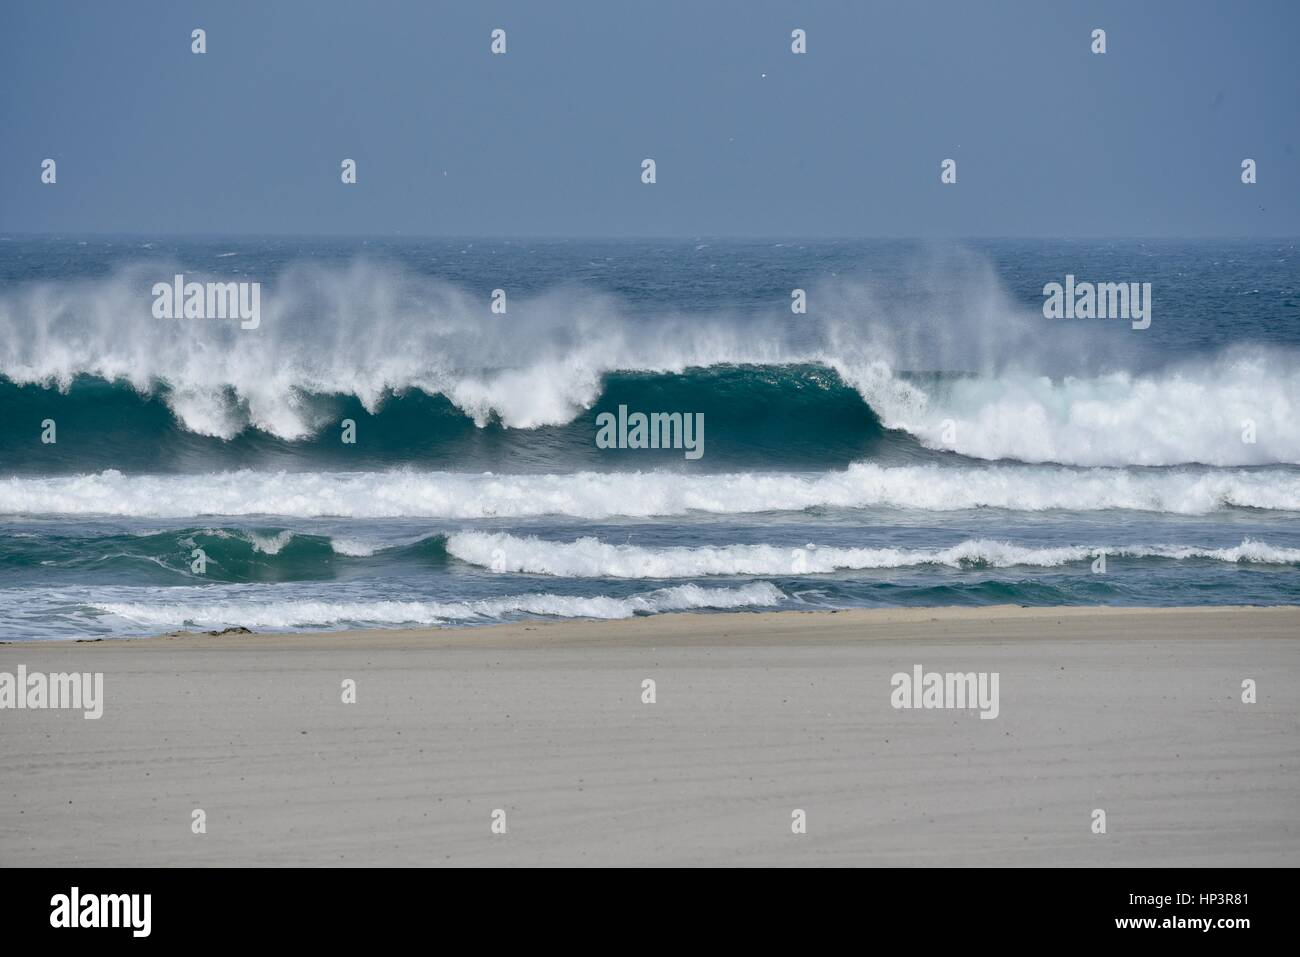 Severe weather, high surf and waves crash upon shore of Mission Beach, San Diego,  California. - Stock Image